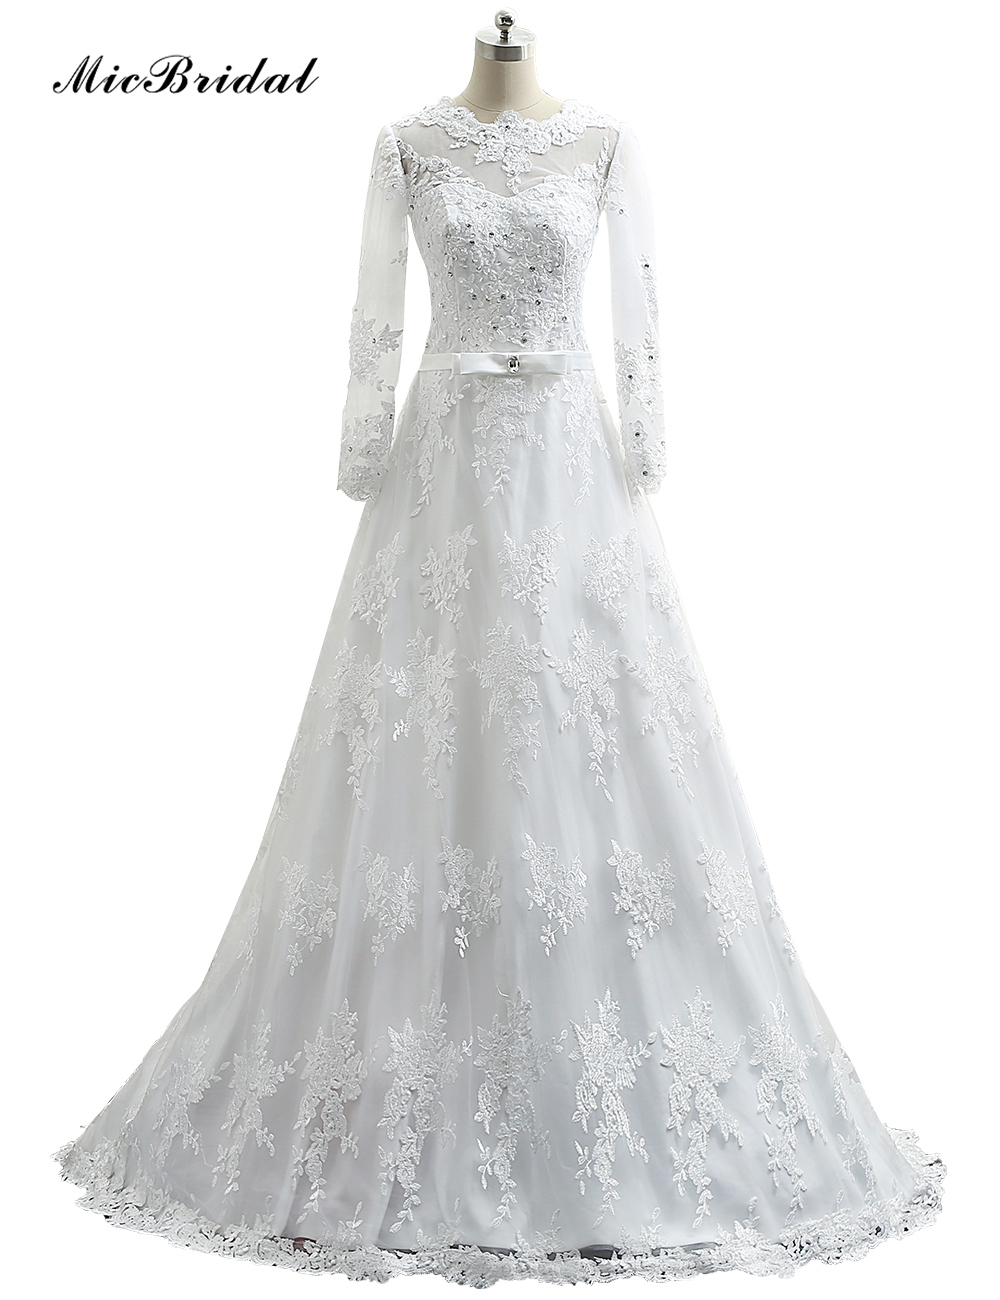 Micbridal 2016 new lace vintage wedding dress a line long for Vintage beaded lace wedding dress